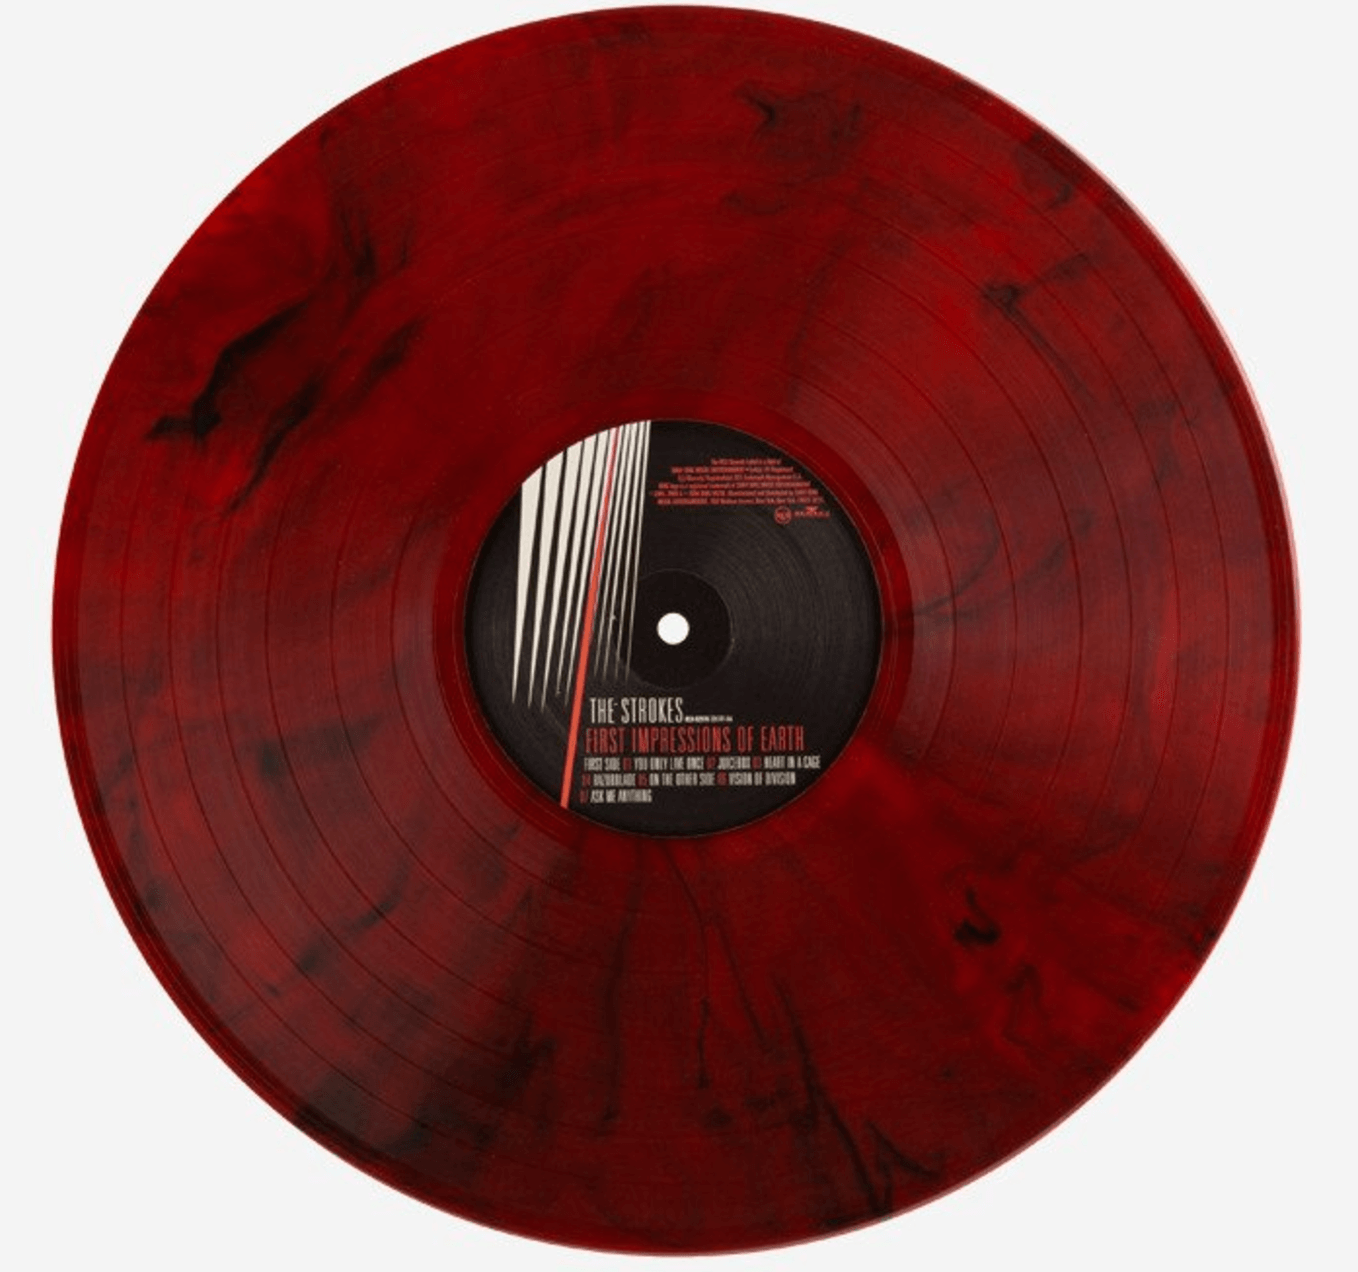 New Pressing The Strokes First Impressions Of Earth